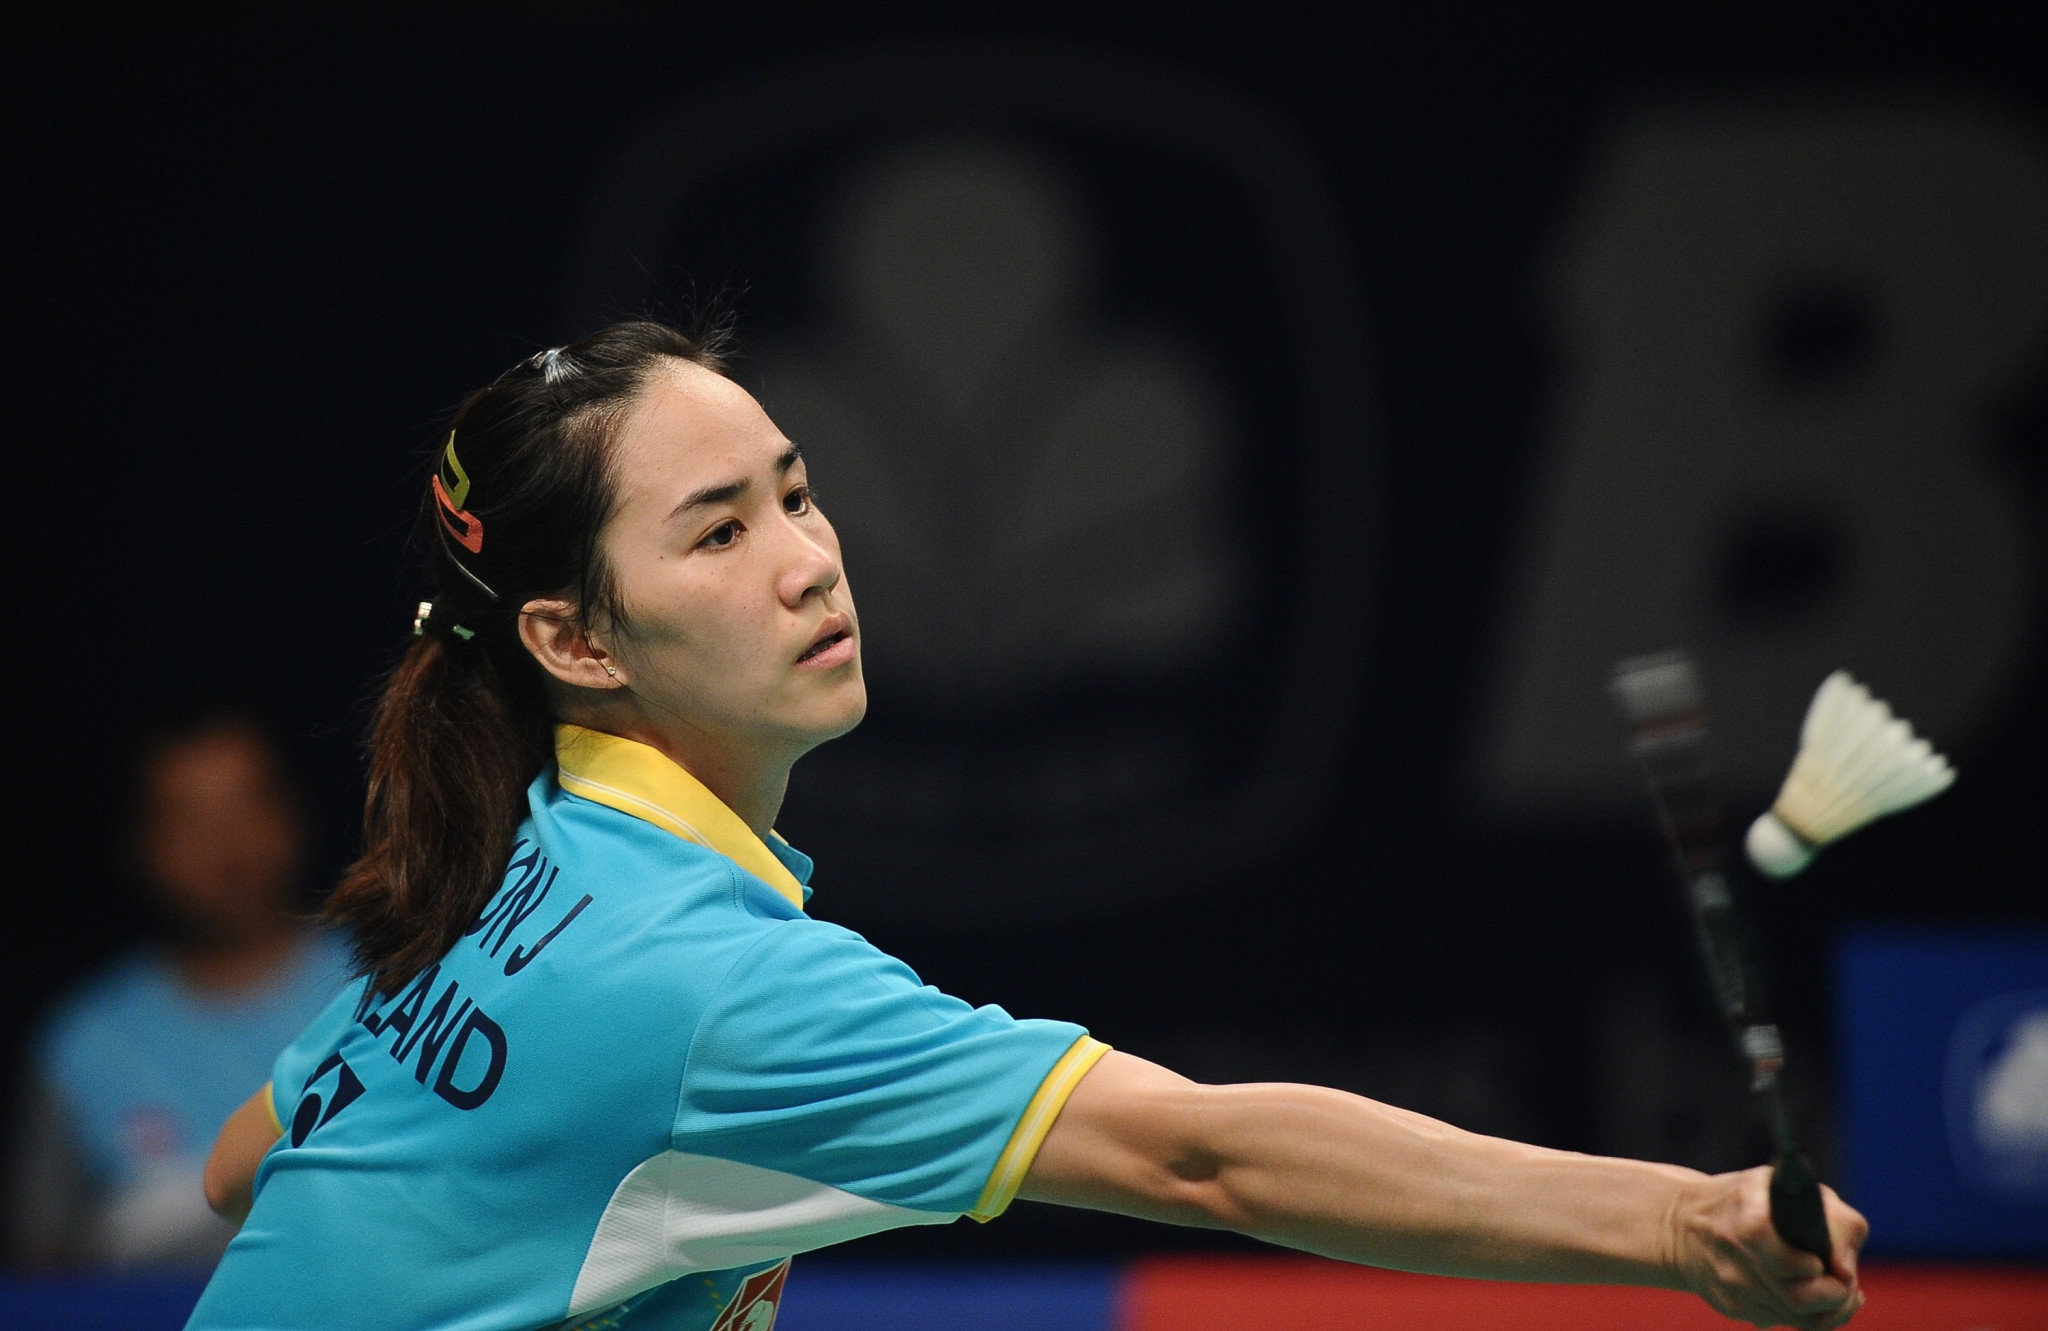 Top seed Zhang through to final at BWF Bitburger Open